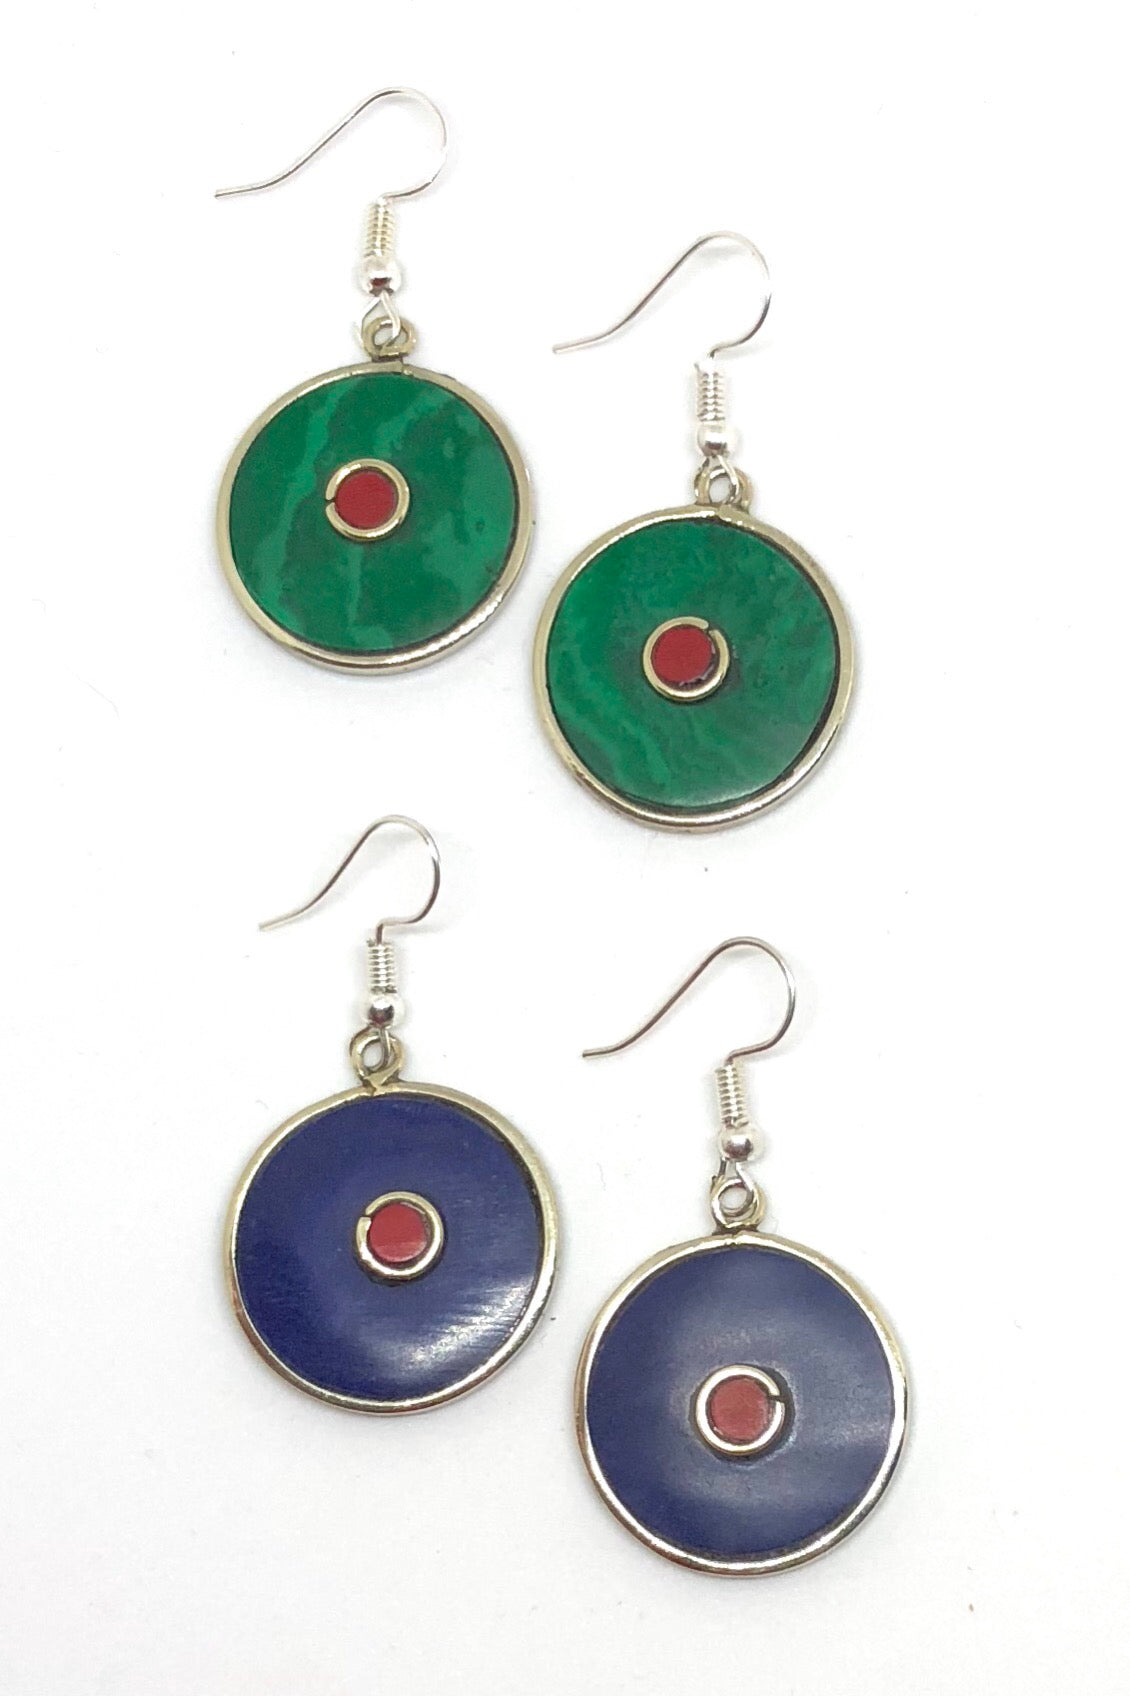 Earrings Paloma Circle in malachite green Colour, lapis blue indian style hippie earrings